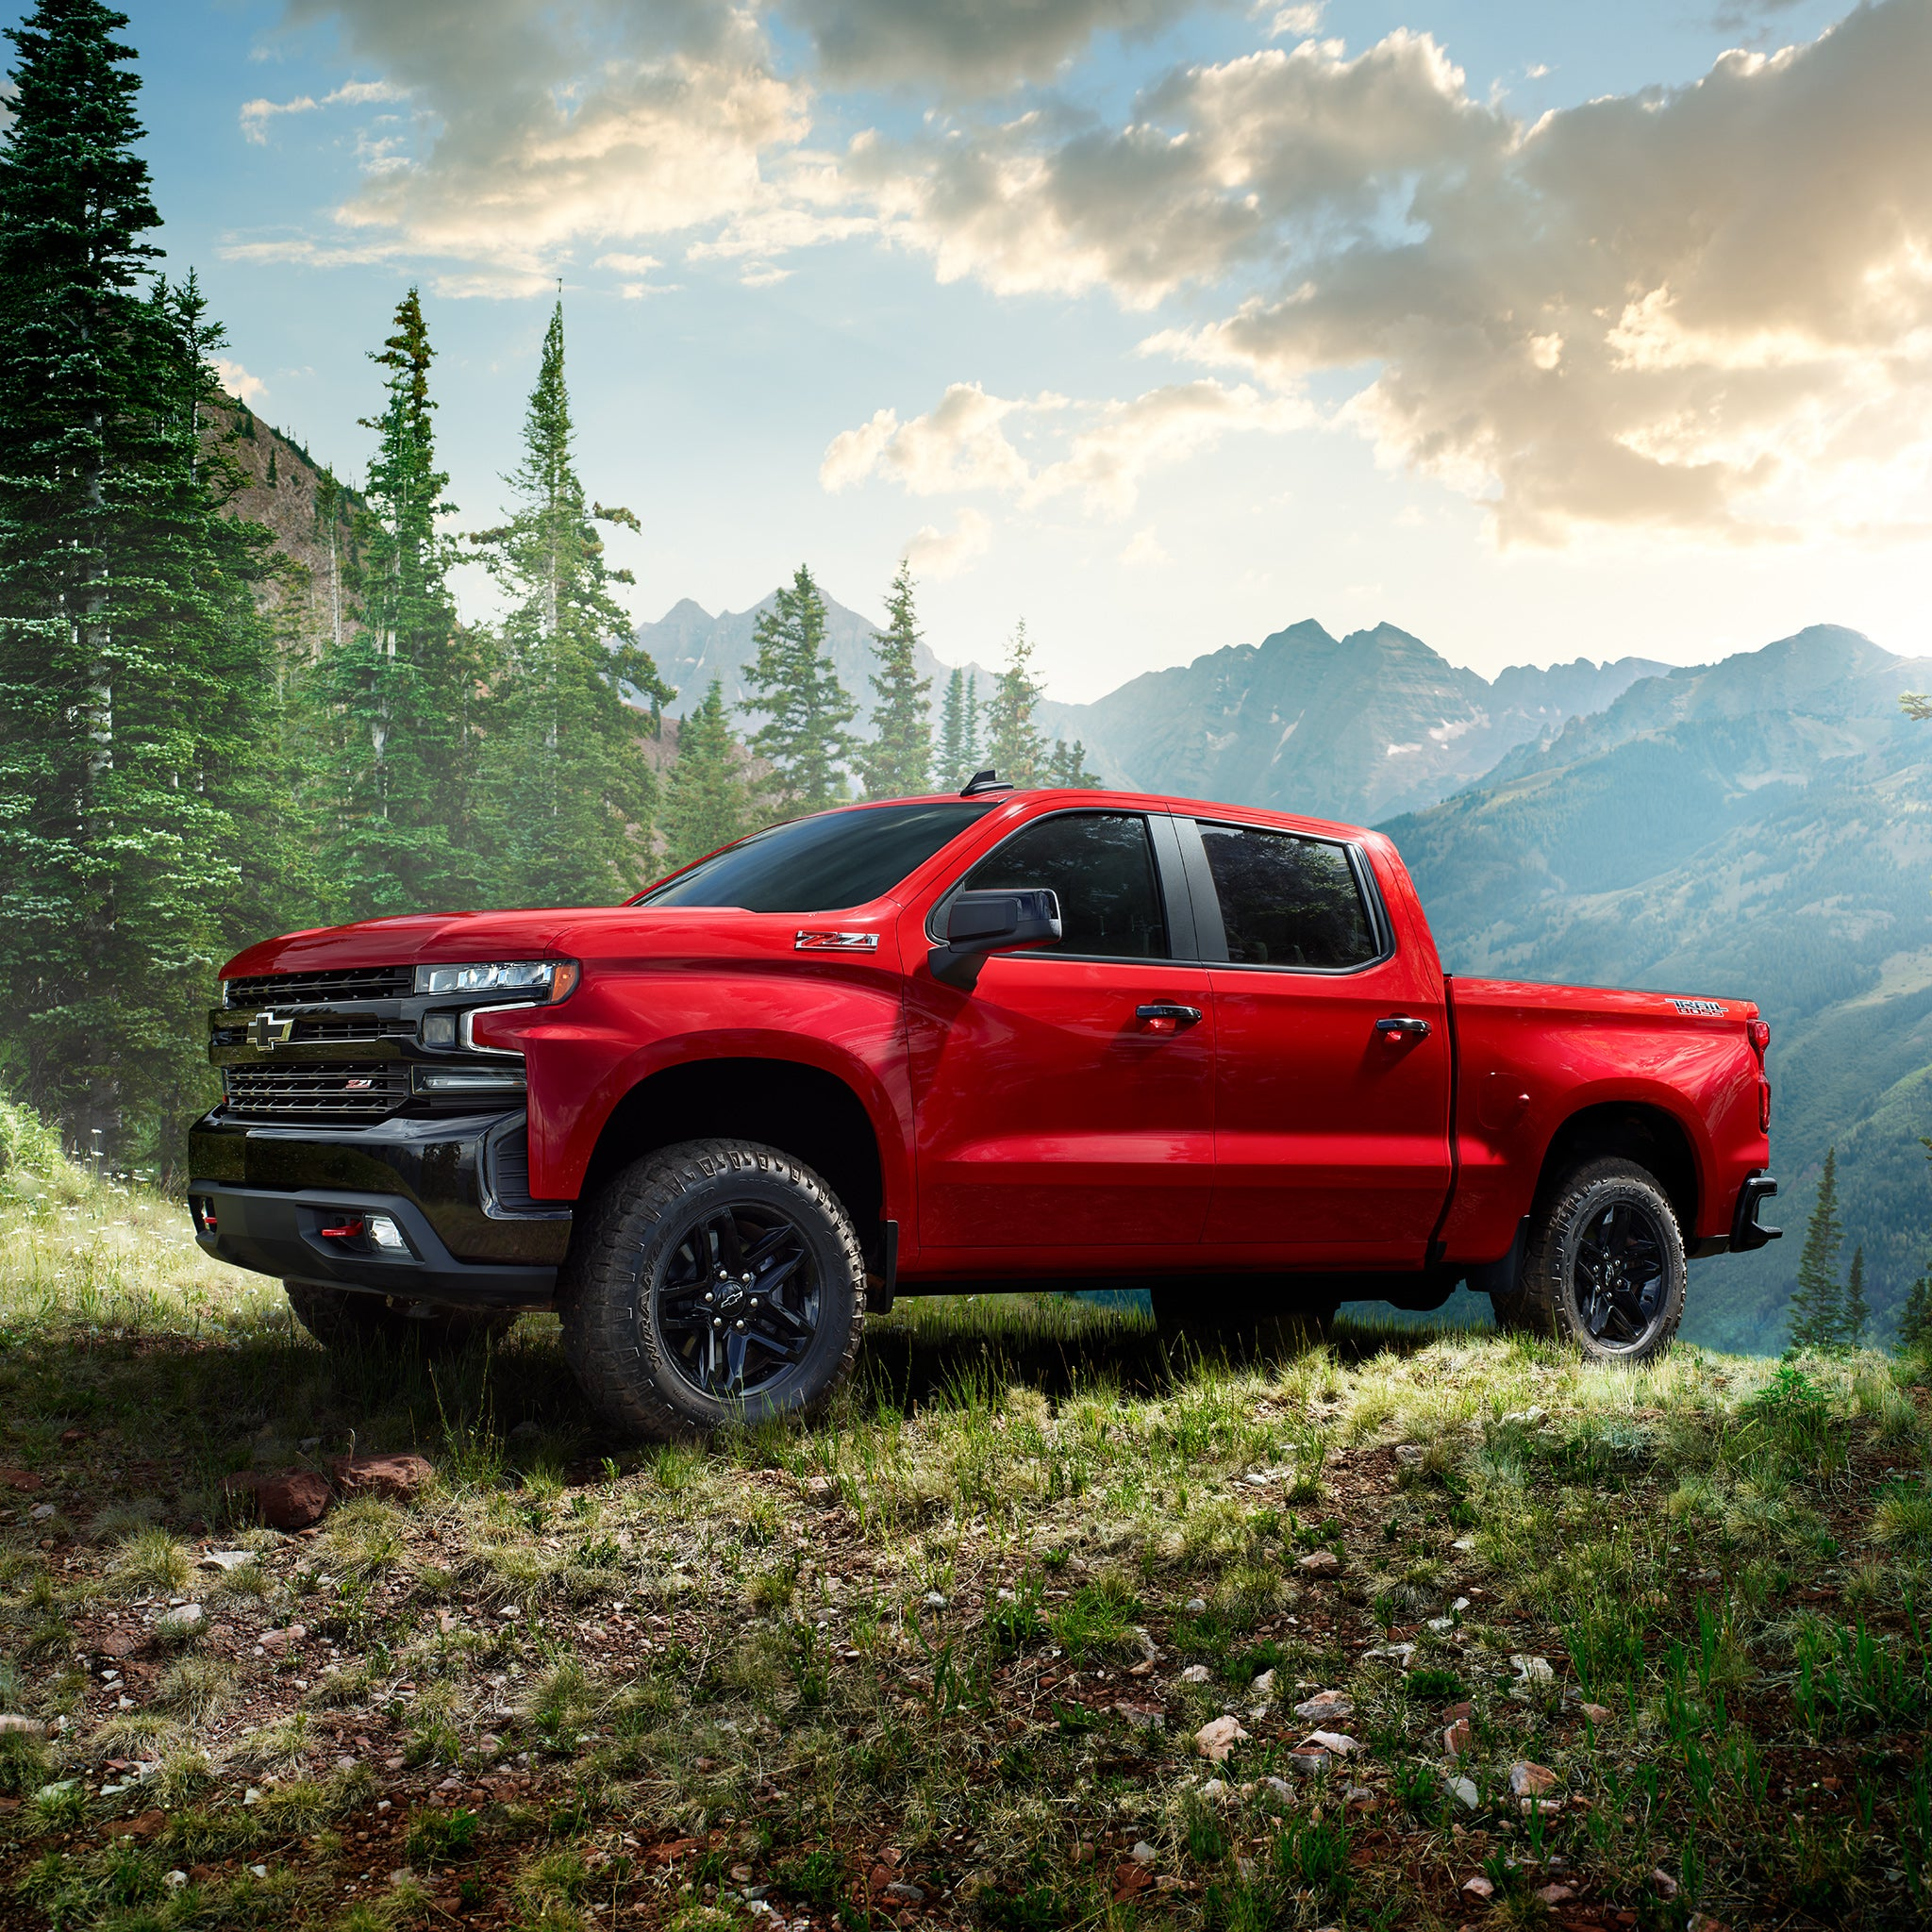 2019 Chevrolet Silverado 1500 Chevrolet Silverado 1500 Trim Levels Features Specs In Lakeville Mn